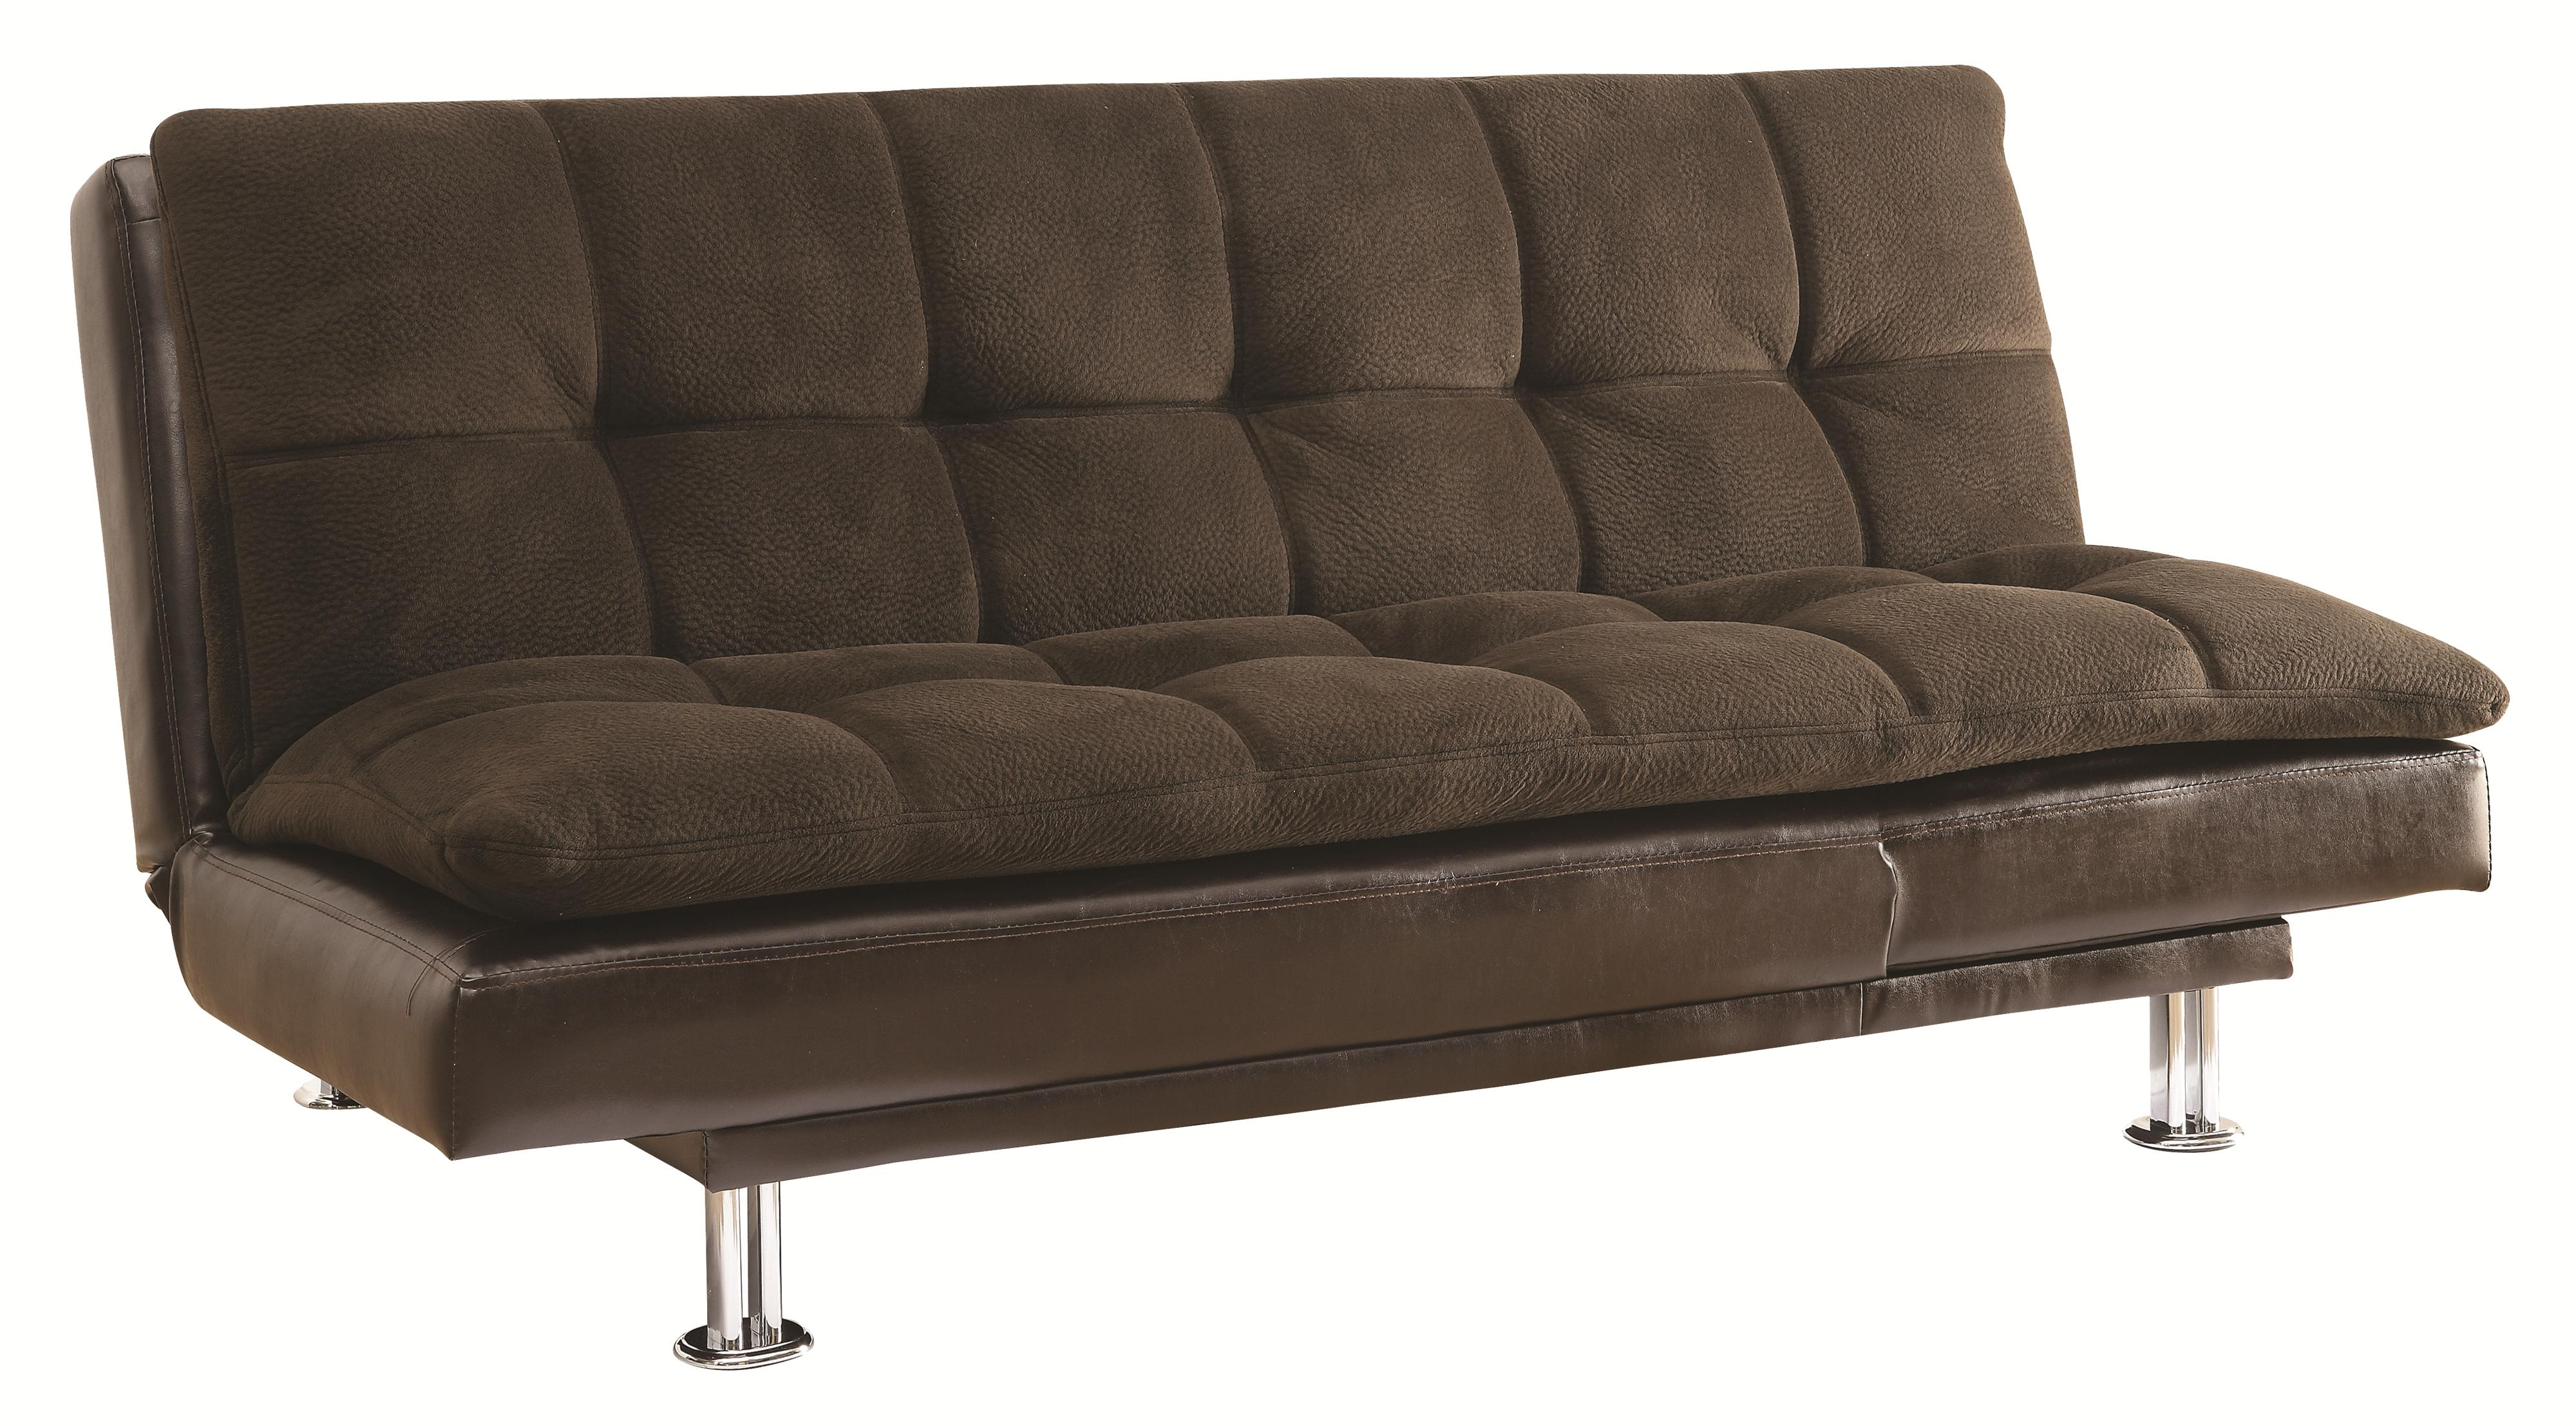 Sofa Beds and Futons Millie Sofa Bed by Coaster at Northeast Factory Direct